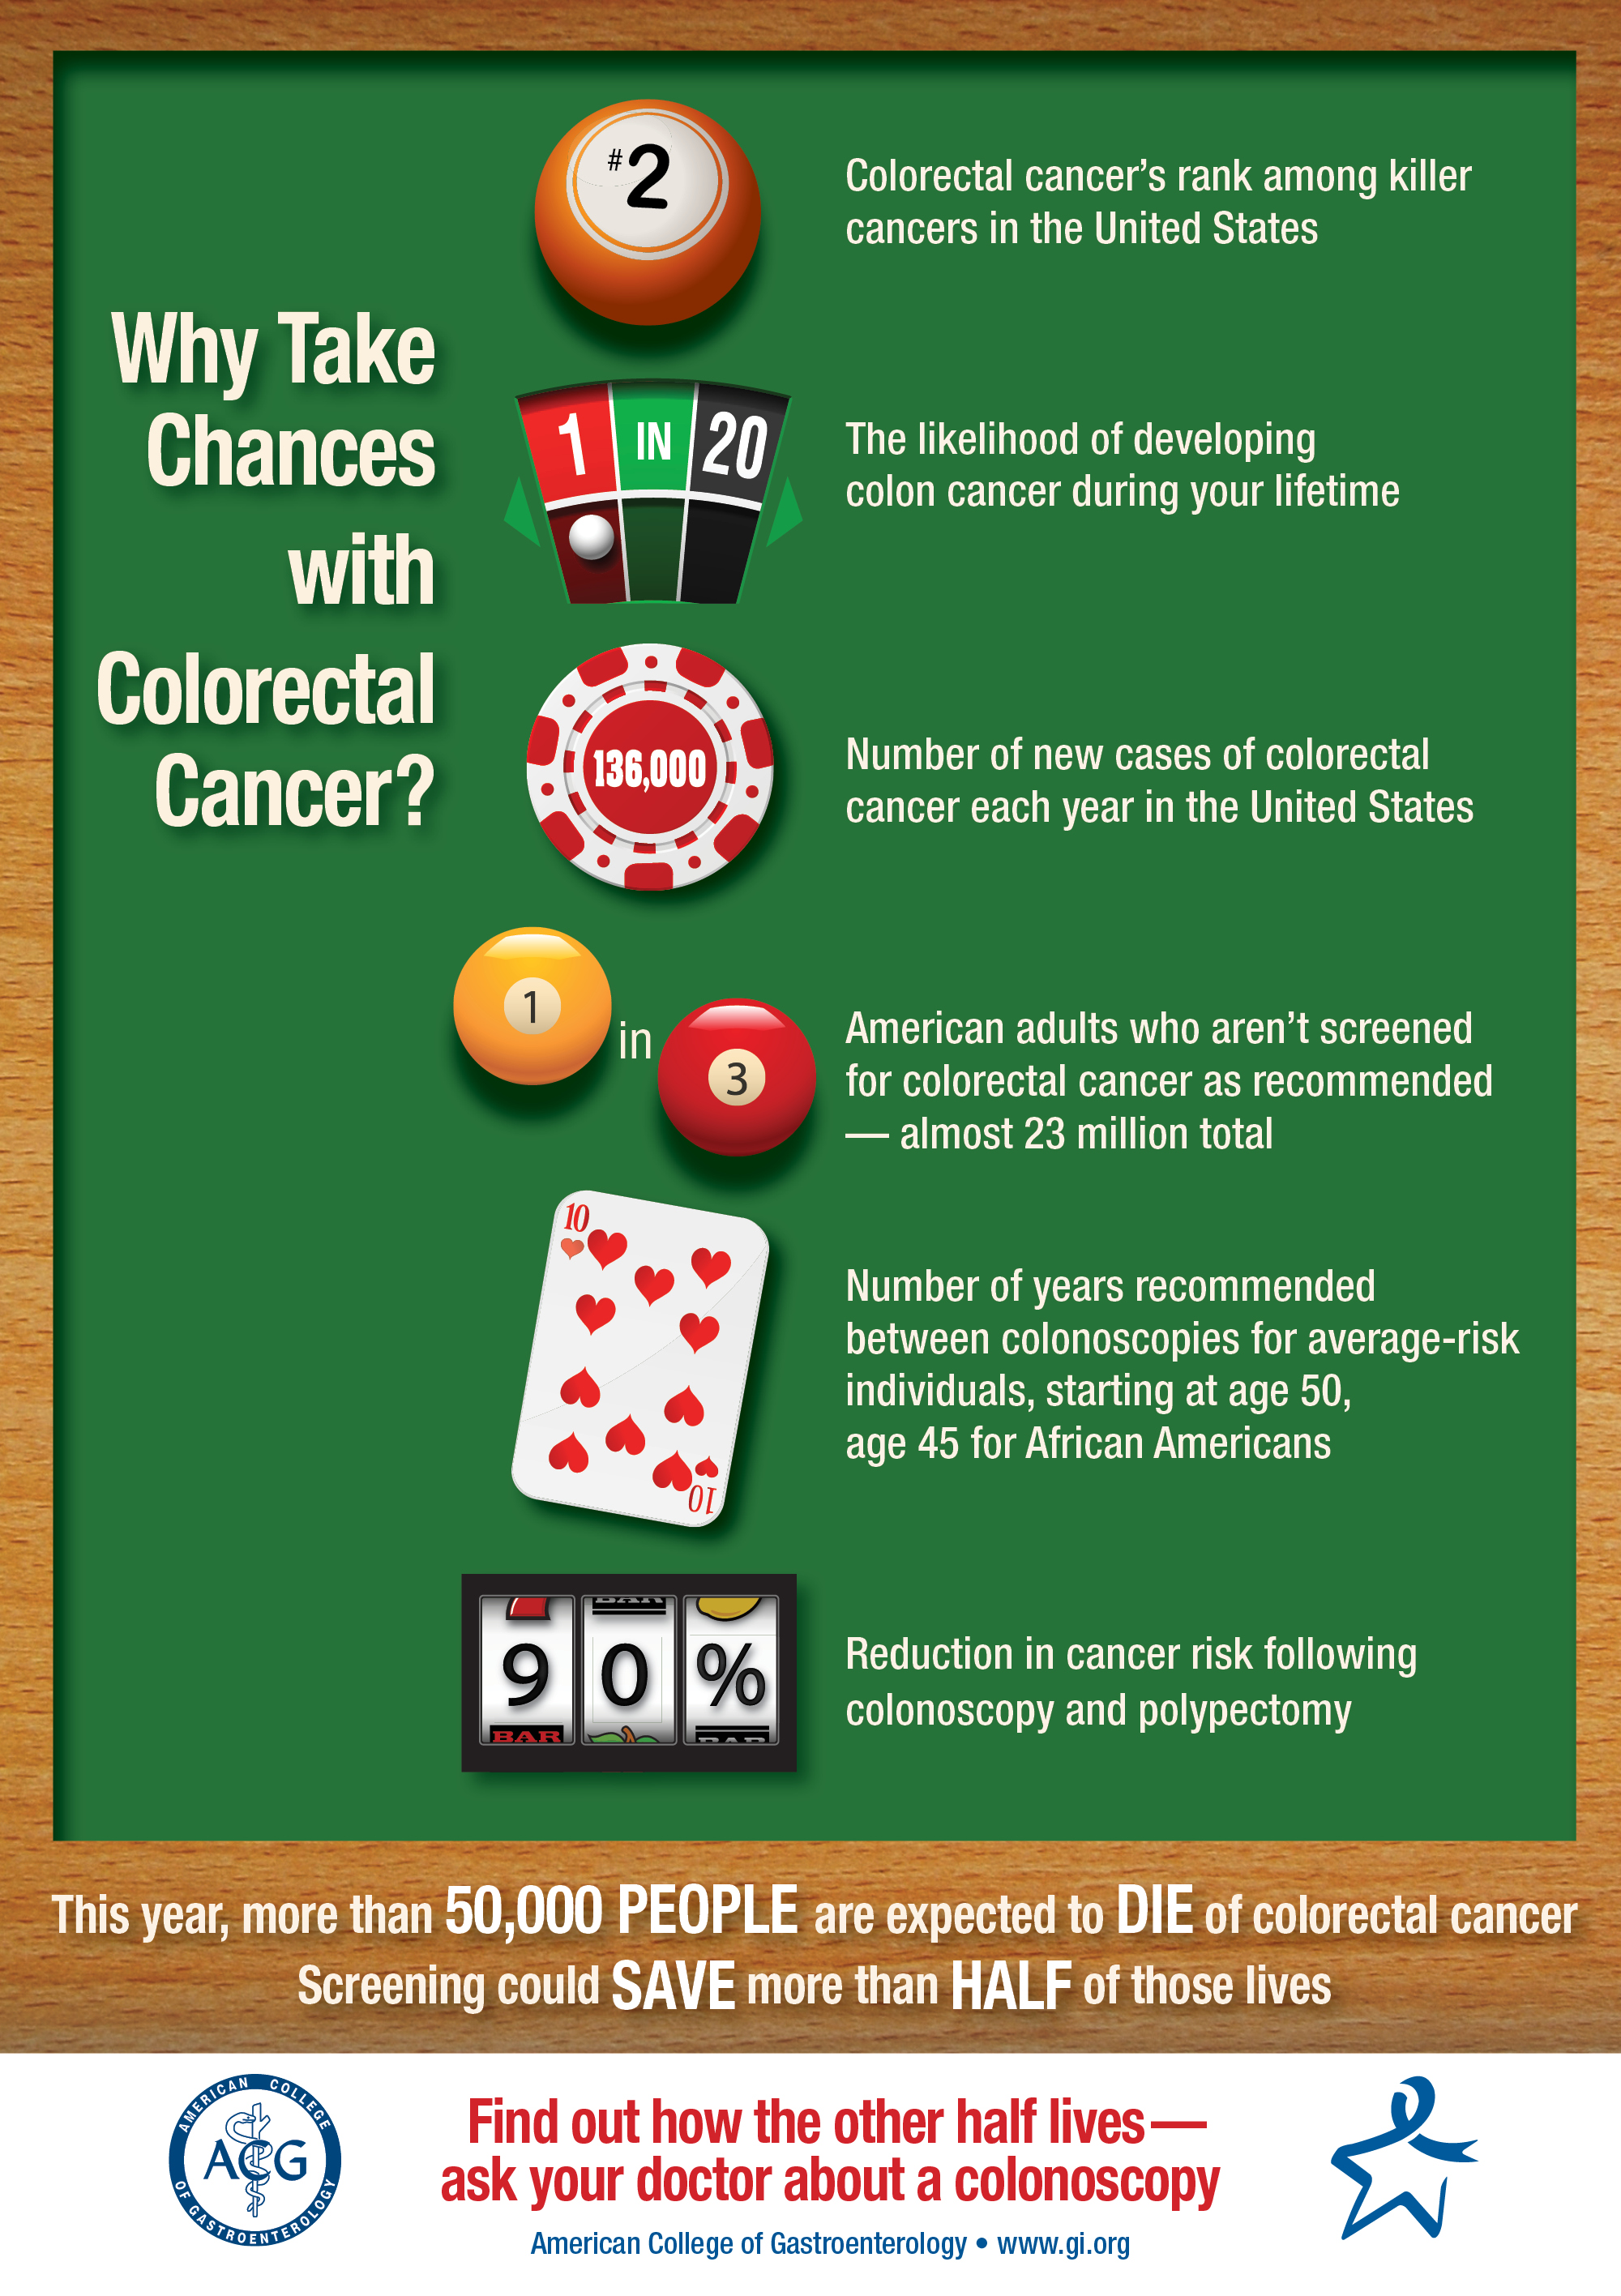 ACG14_WhyTakeChances_Infographic_web-3.2.15.jpeg